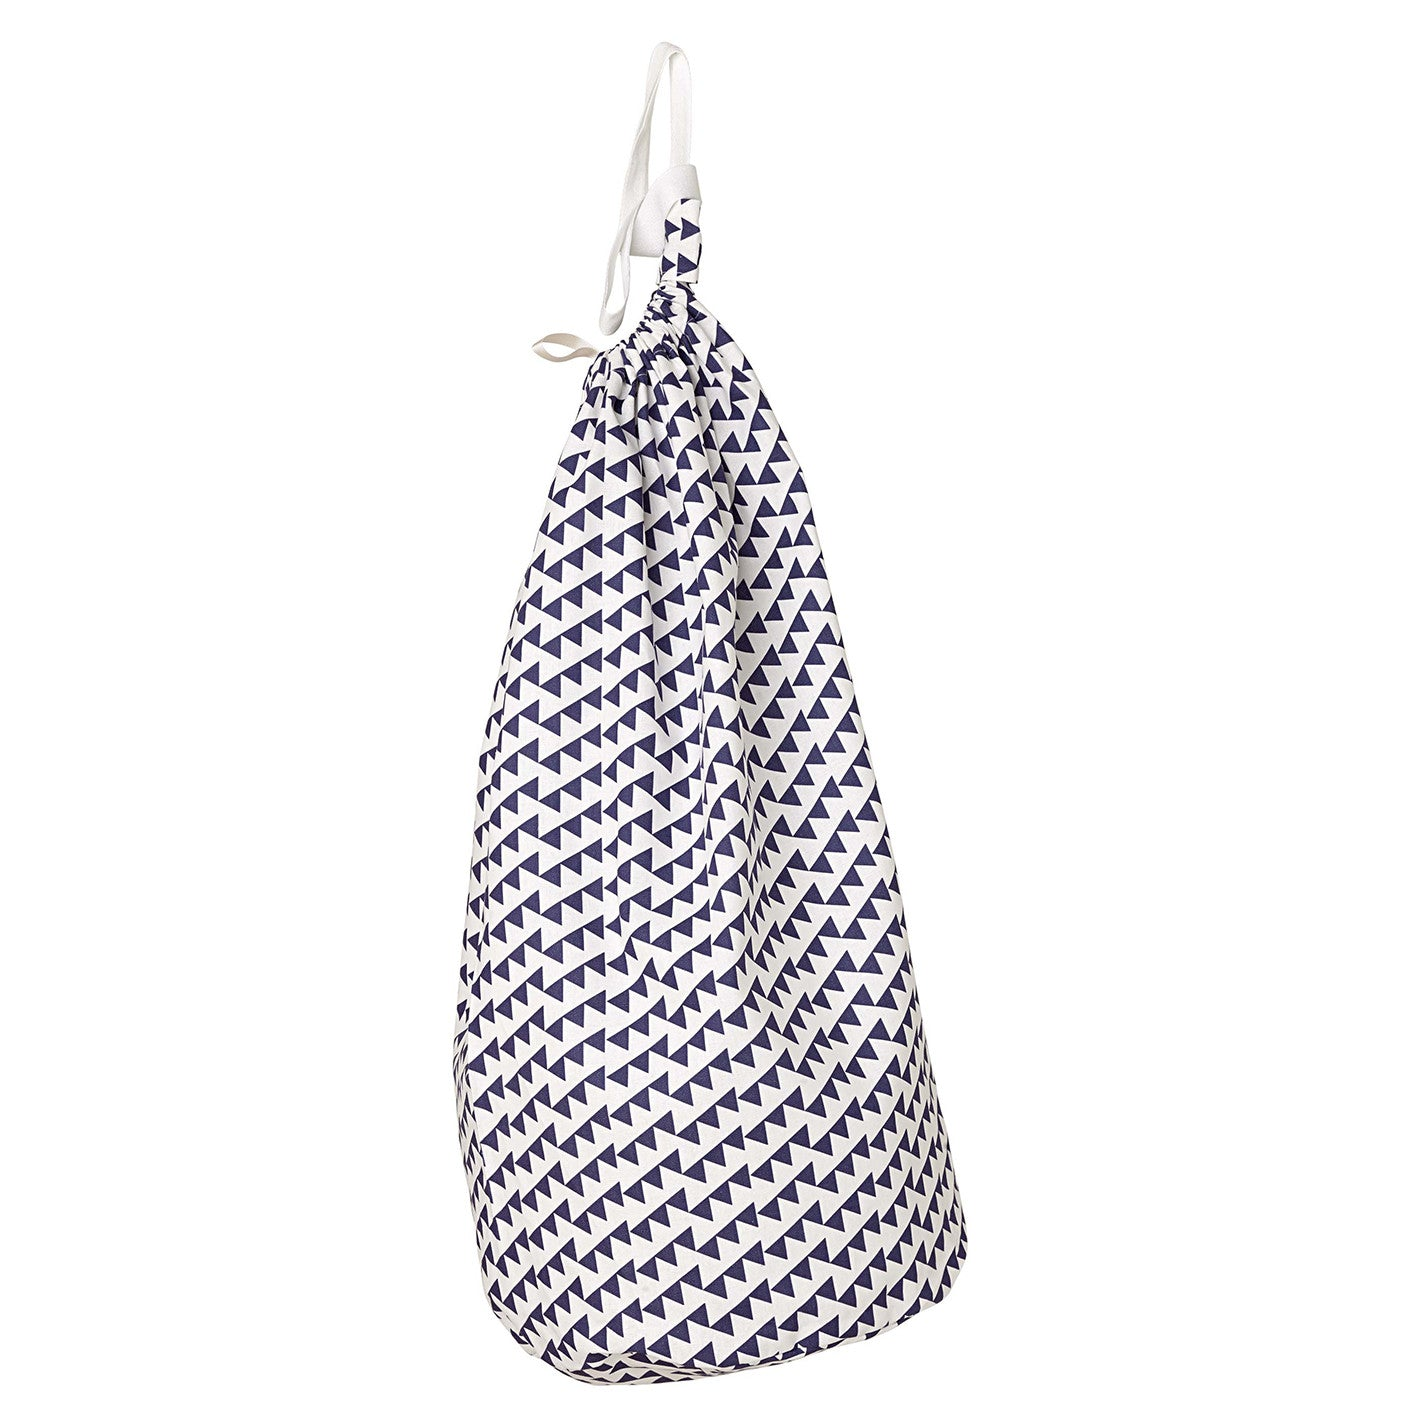 Bunting Geometric Pattern Linen Cotton Drawstring Laundry & Storage Bag in Dark Aubergine Purple ships from canada (USA)